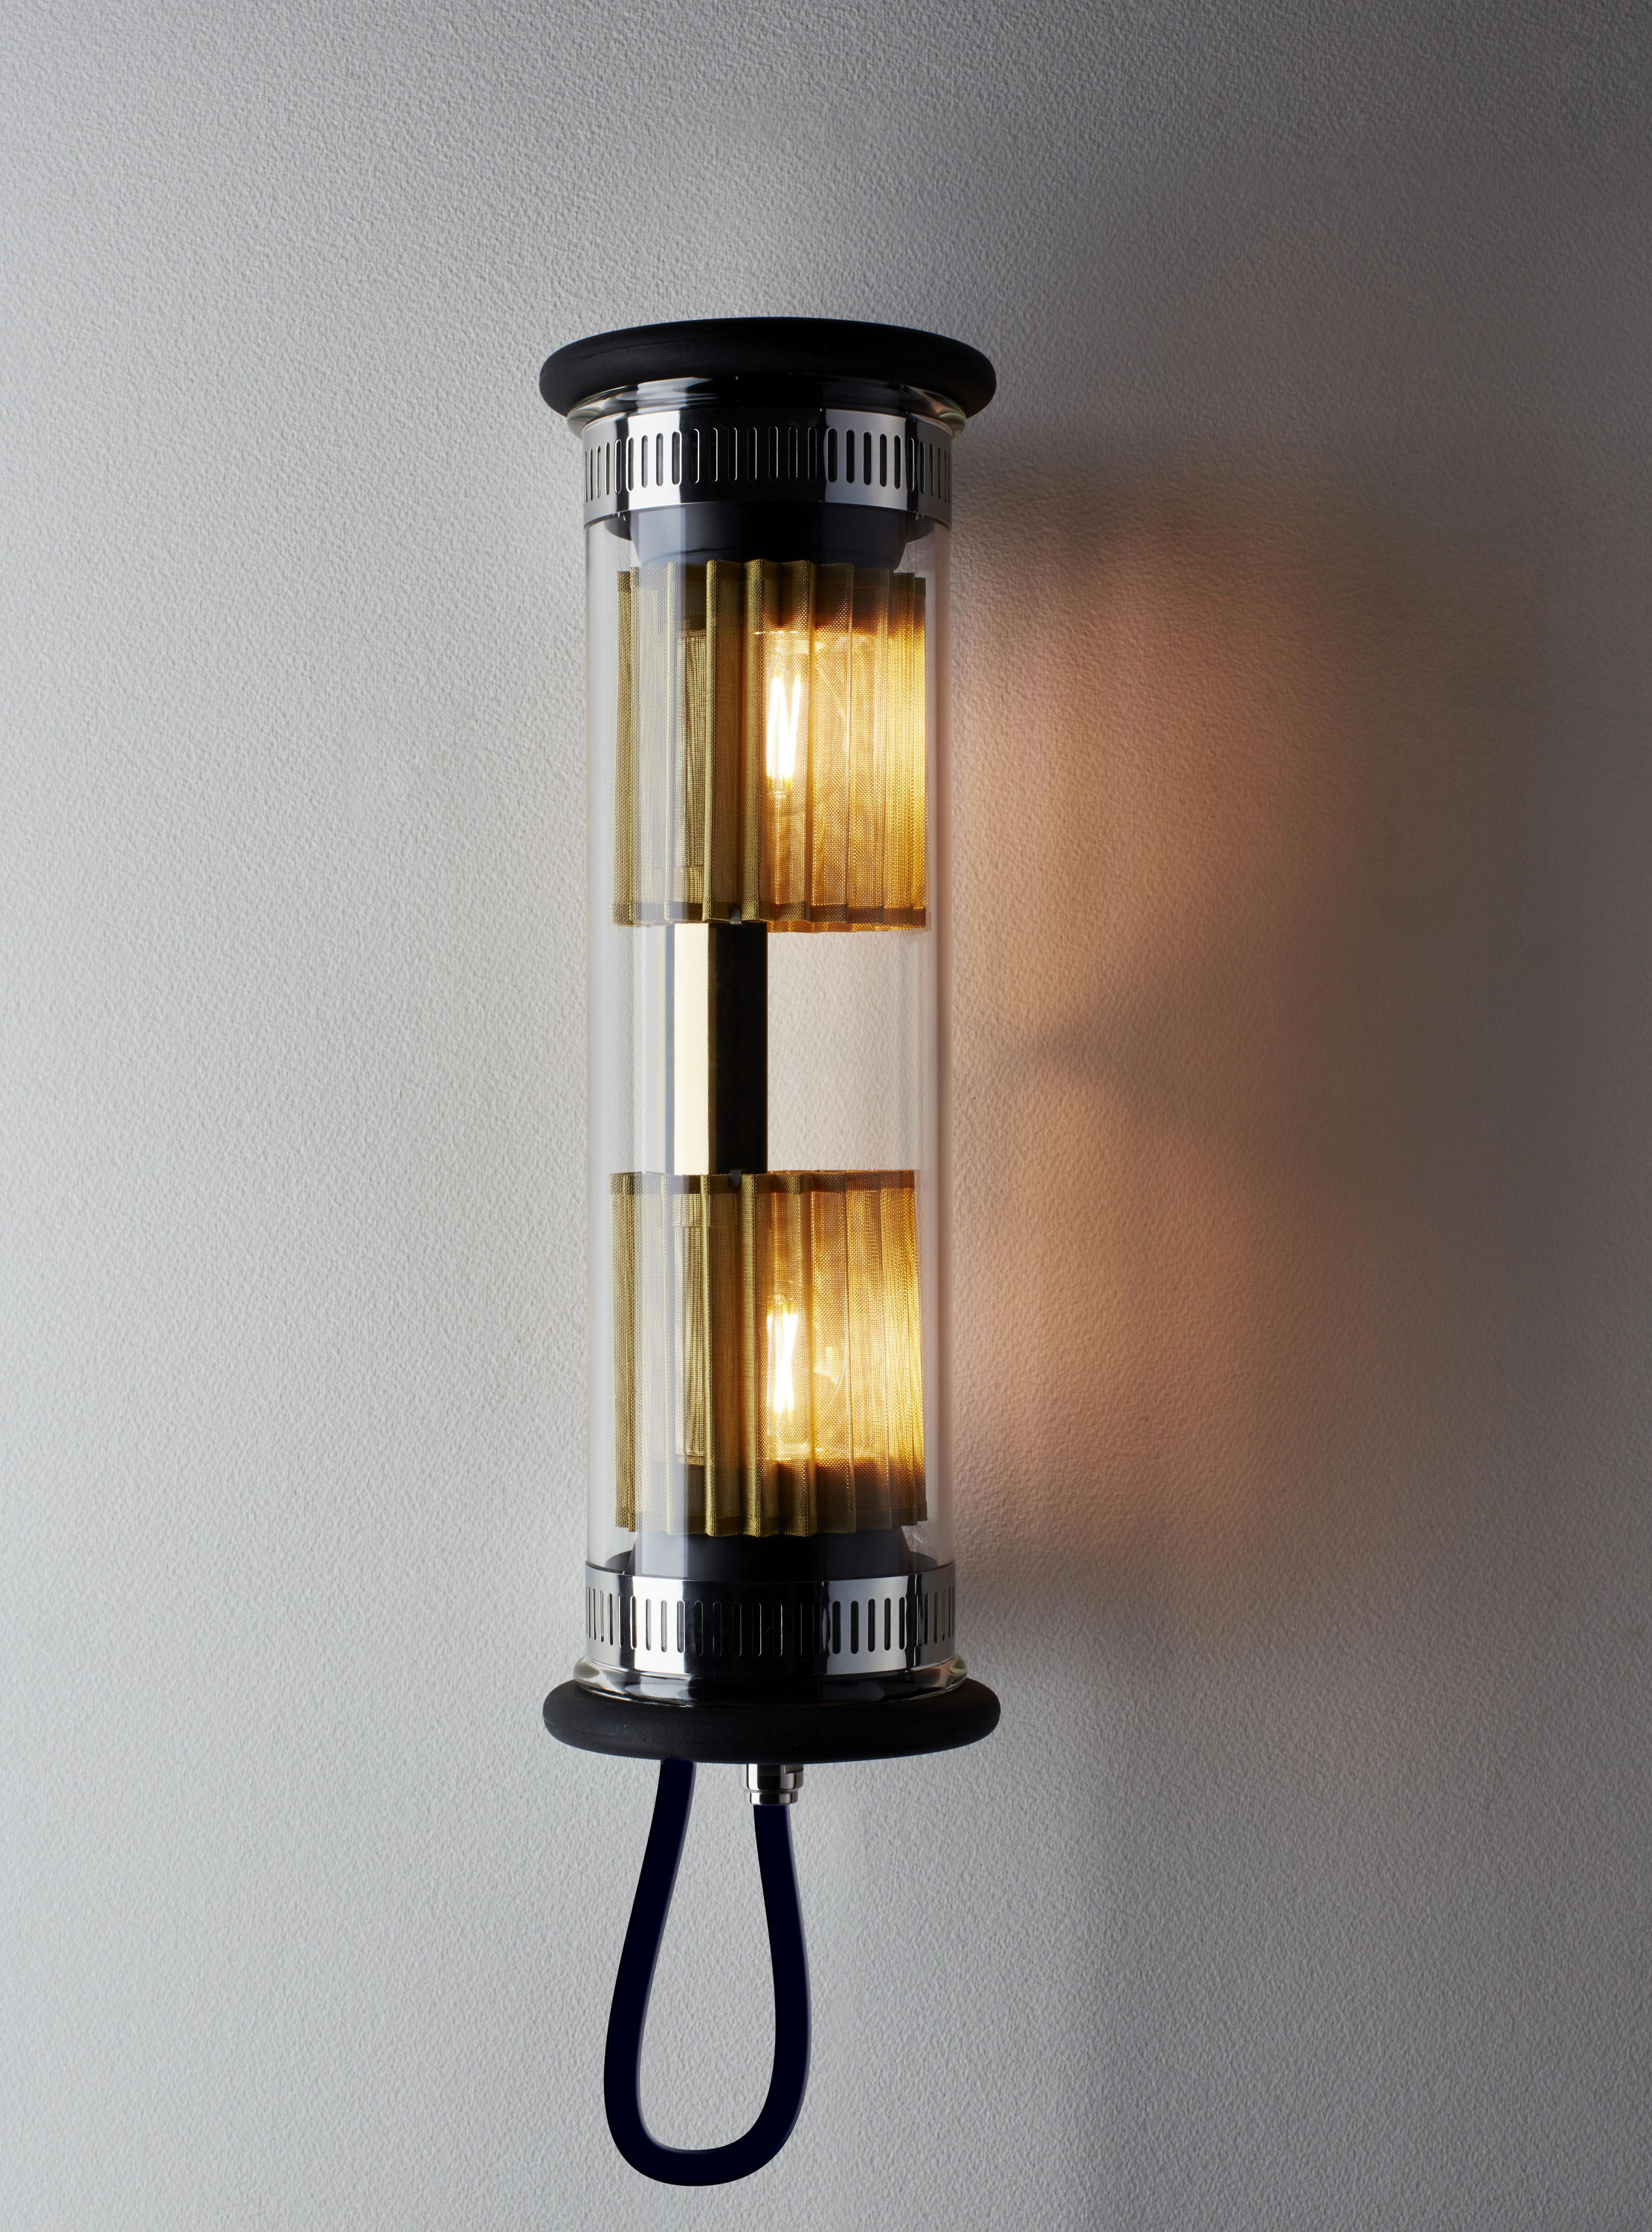 Lampe Gras In The Tube In The Tube 100 350 Gold Wall Lights From Dcw éditions